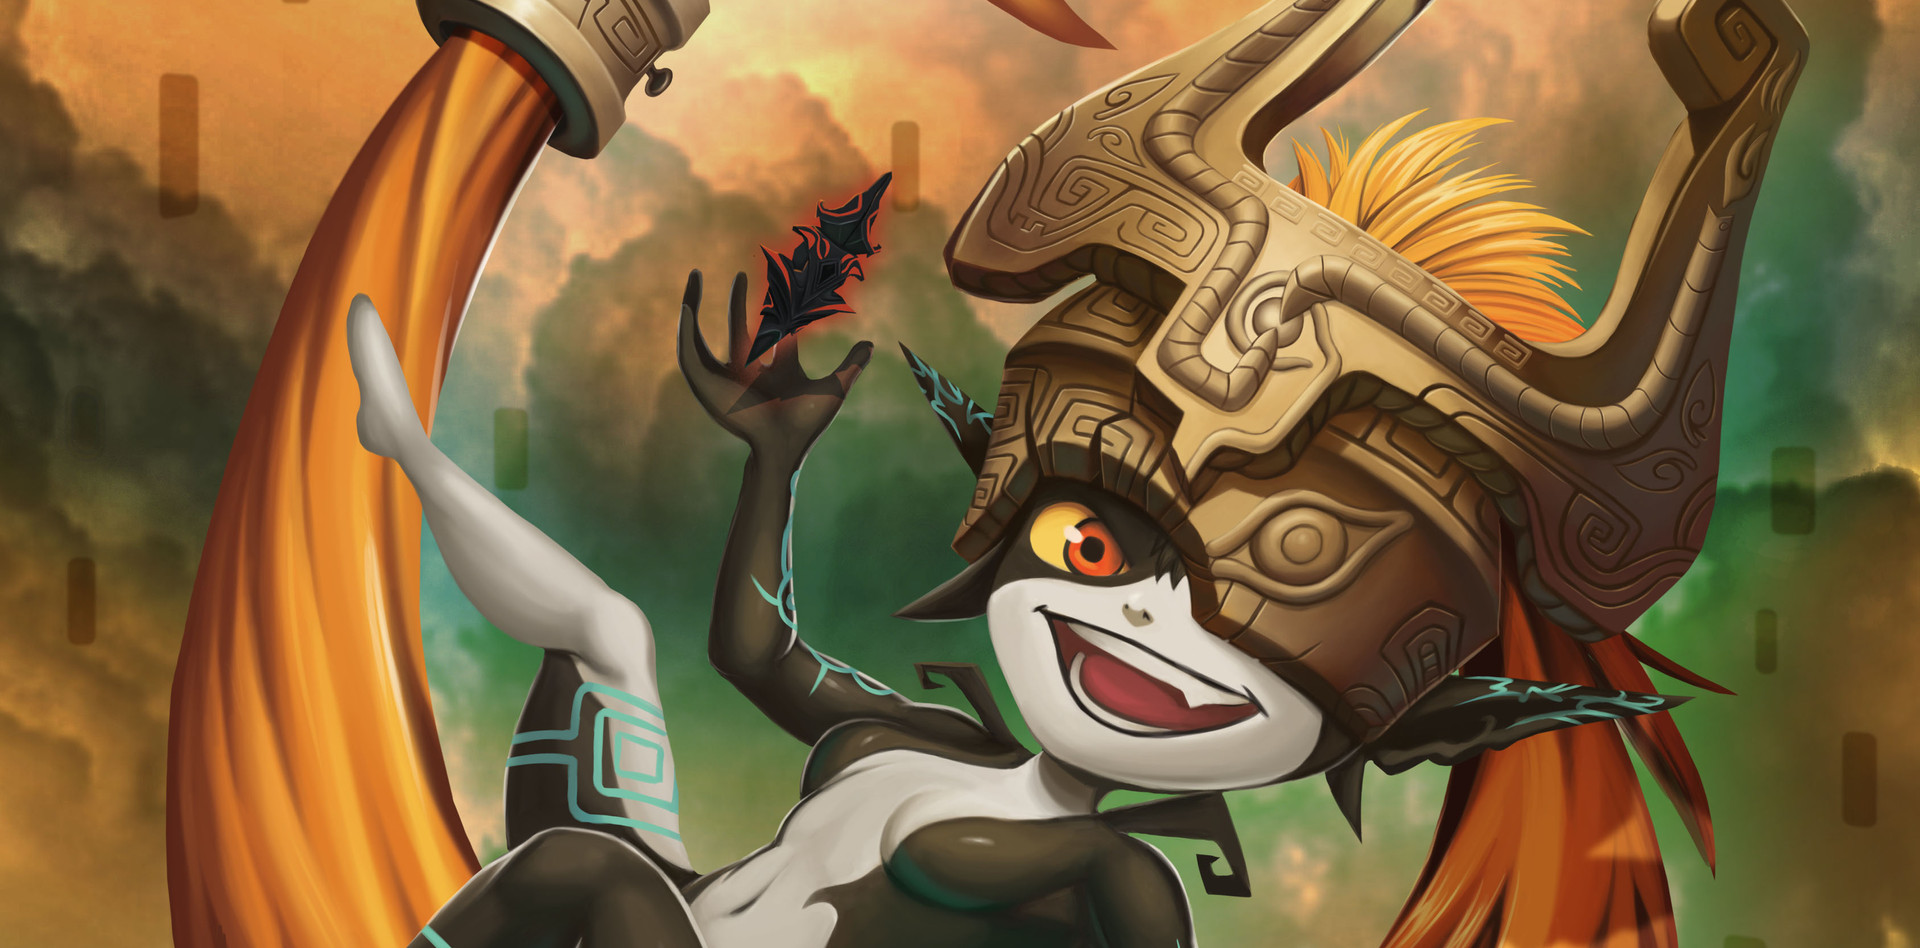 Midna in Twilight